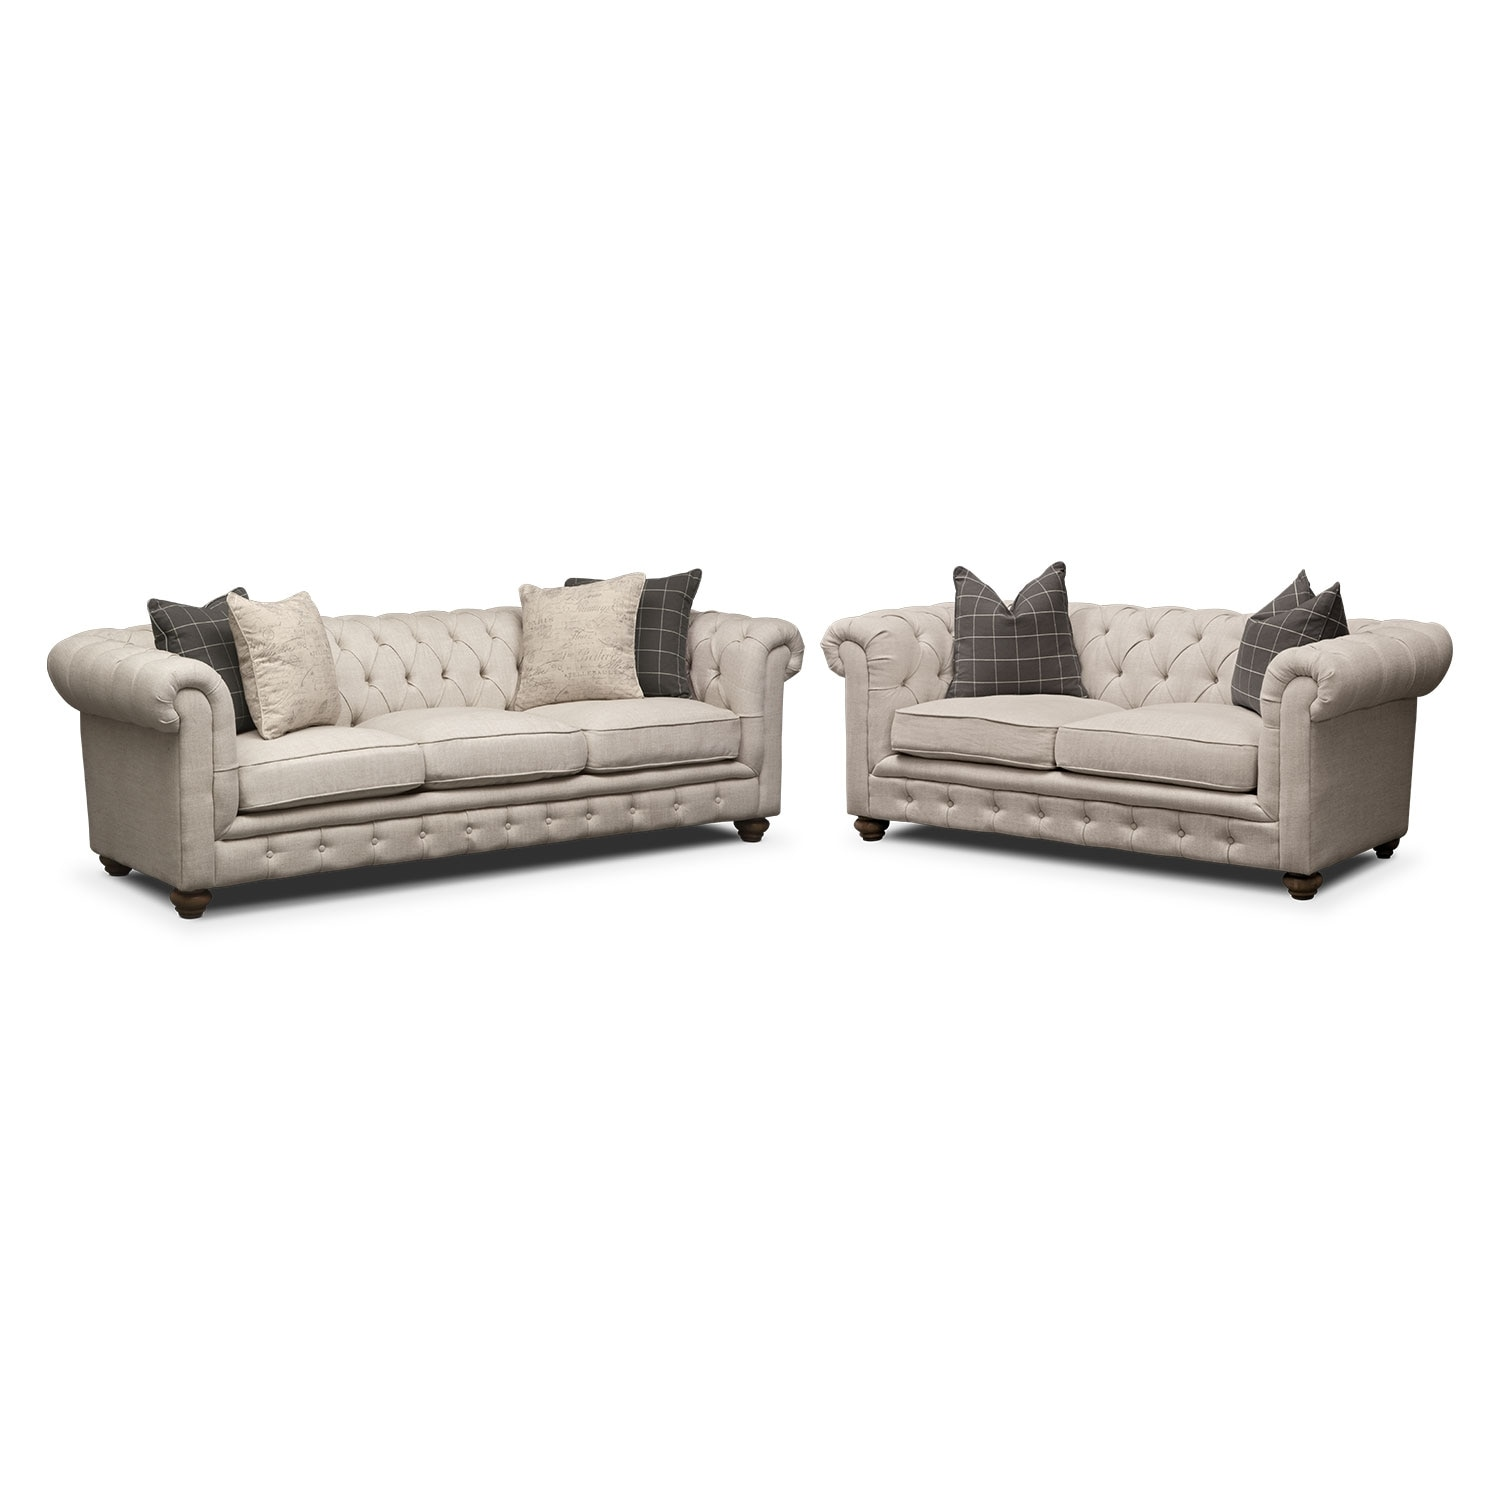 Madeline Sofa and Apartment Sofa Set Beige Value City  : 349725 from www.valuecityfurniture.com size 1500 x 1500 jpeg 95kB